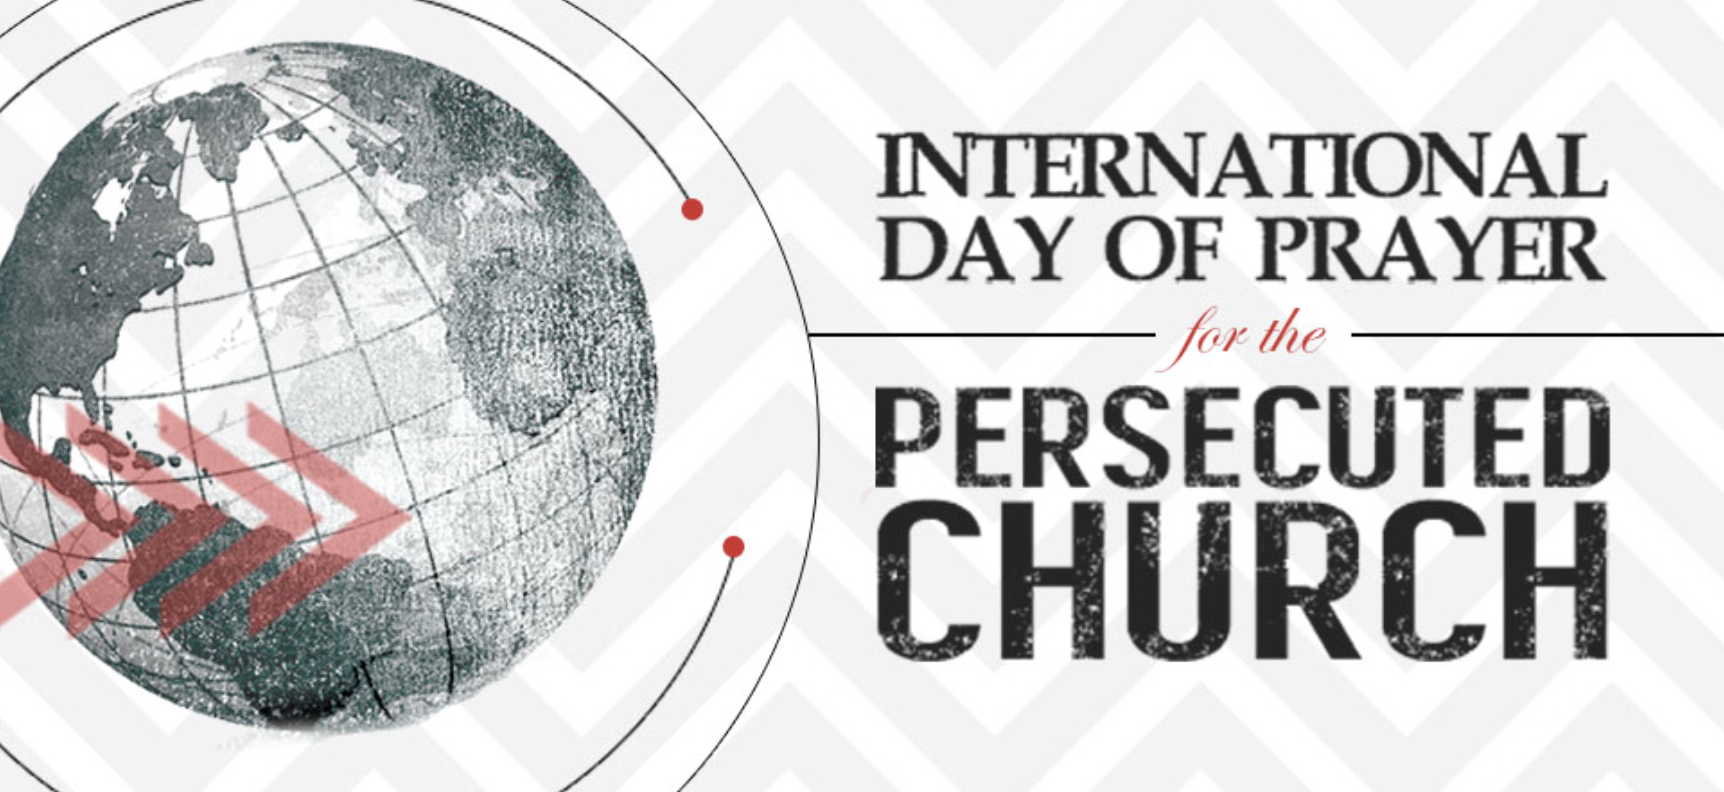 International Day of Prayer for the Persecuted Church #HopeforNations